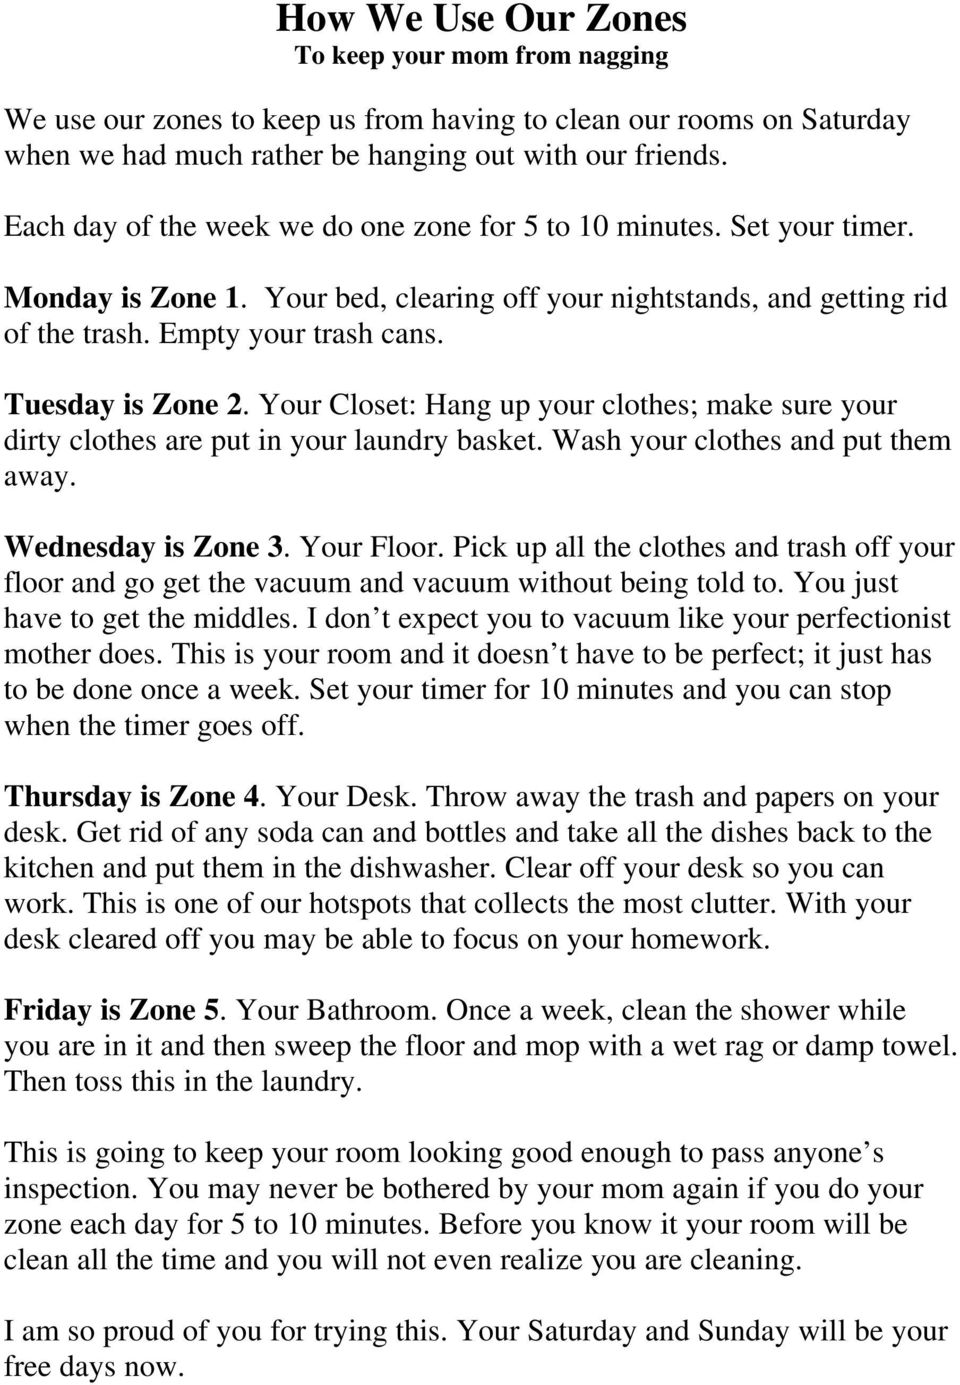 Tuesday is Zone 2. Your Closet: Hang up your clothes; make sure your dirty clothes are put in your laundry basket. Wash your clothes and put them away. Wednesday is Zone 3. Your Floor.